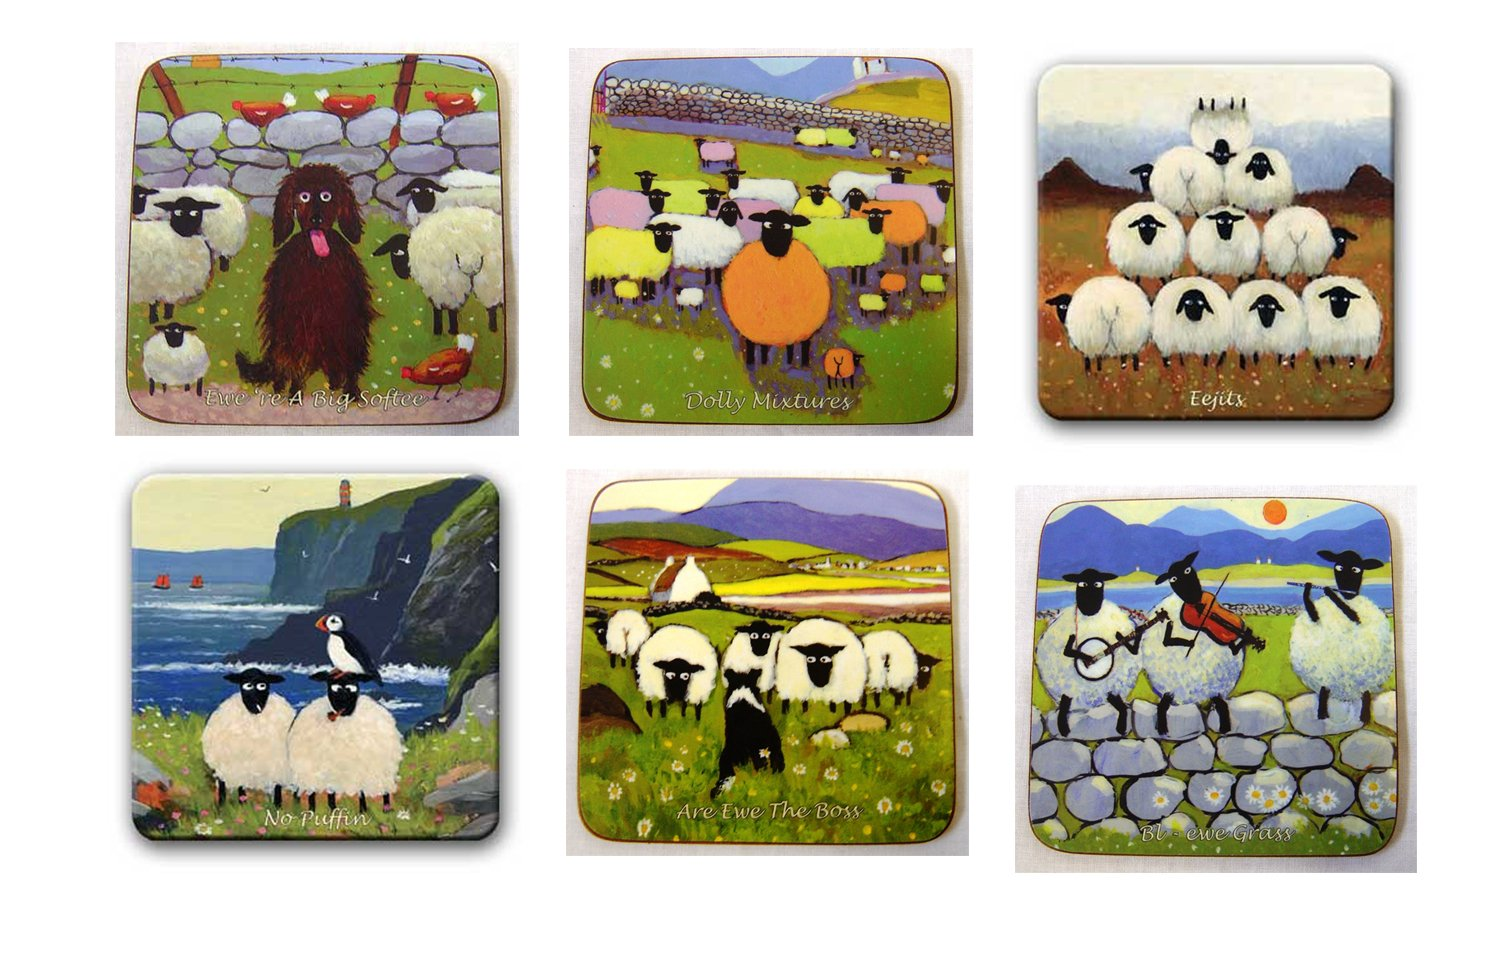 Thomas Joseph Set Of 6 Coasters Edition 3 Buy Online In Dominica At Dominica Desertcart Com Productid 51381944